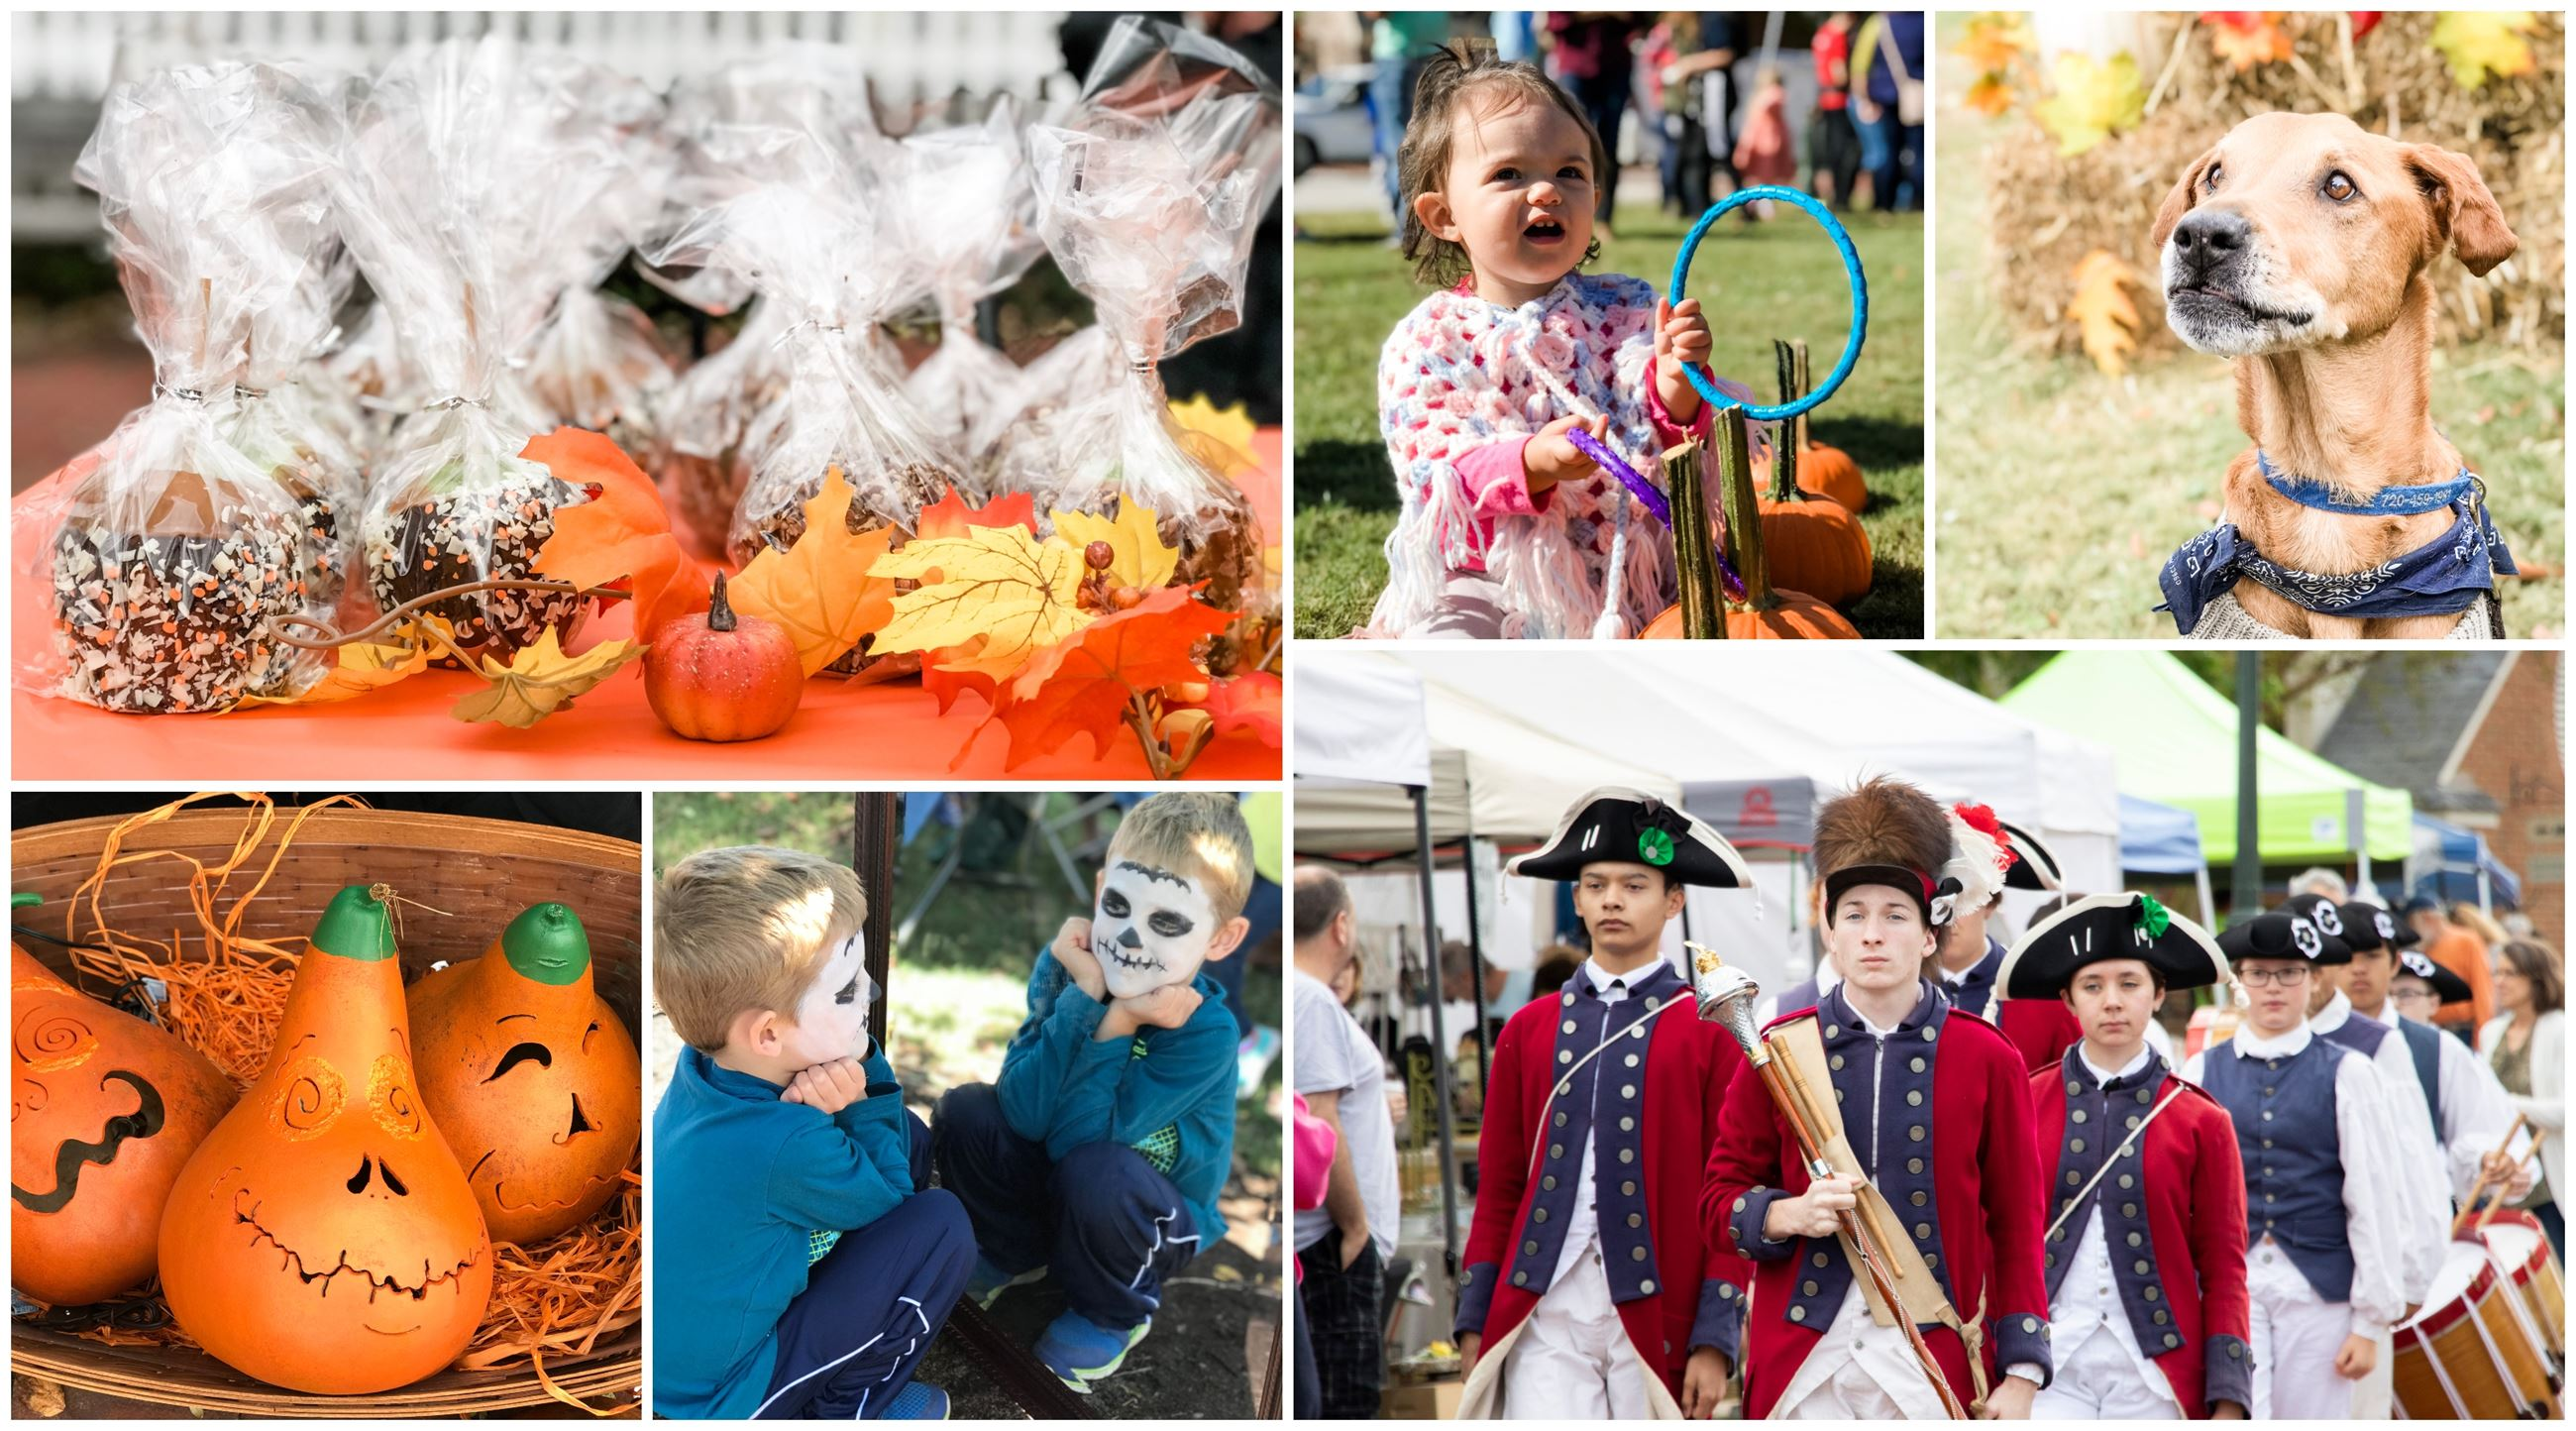 October Market Activities including music, face painting, and games